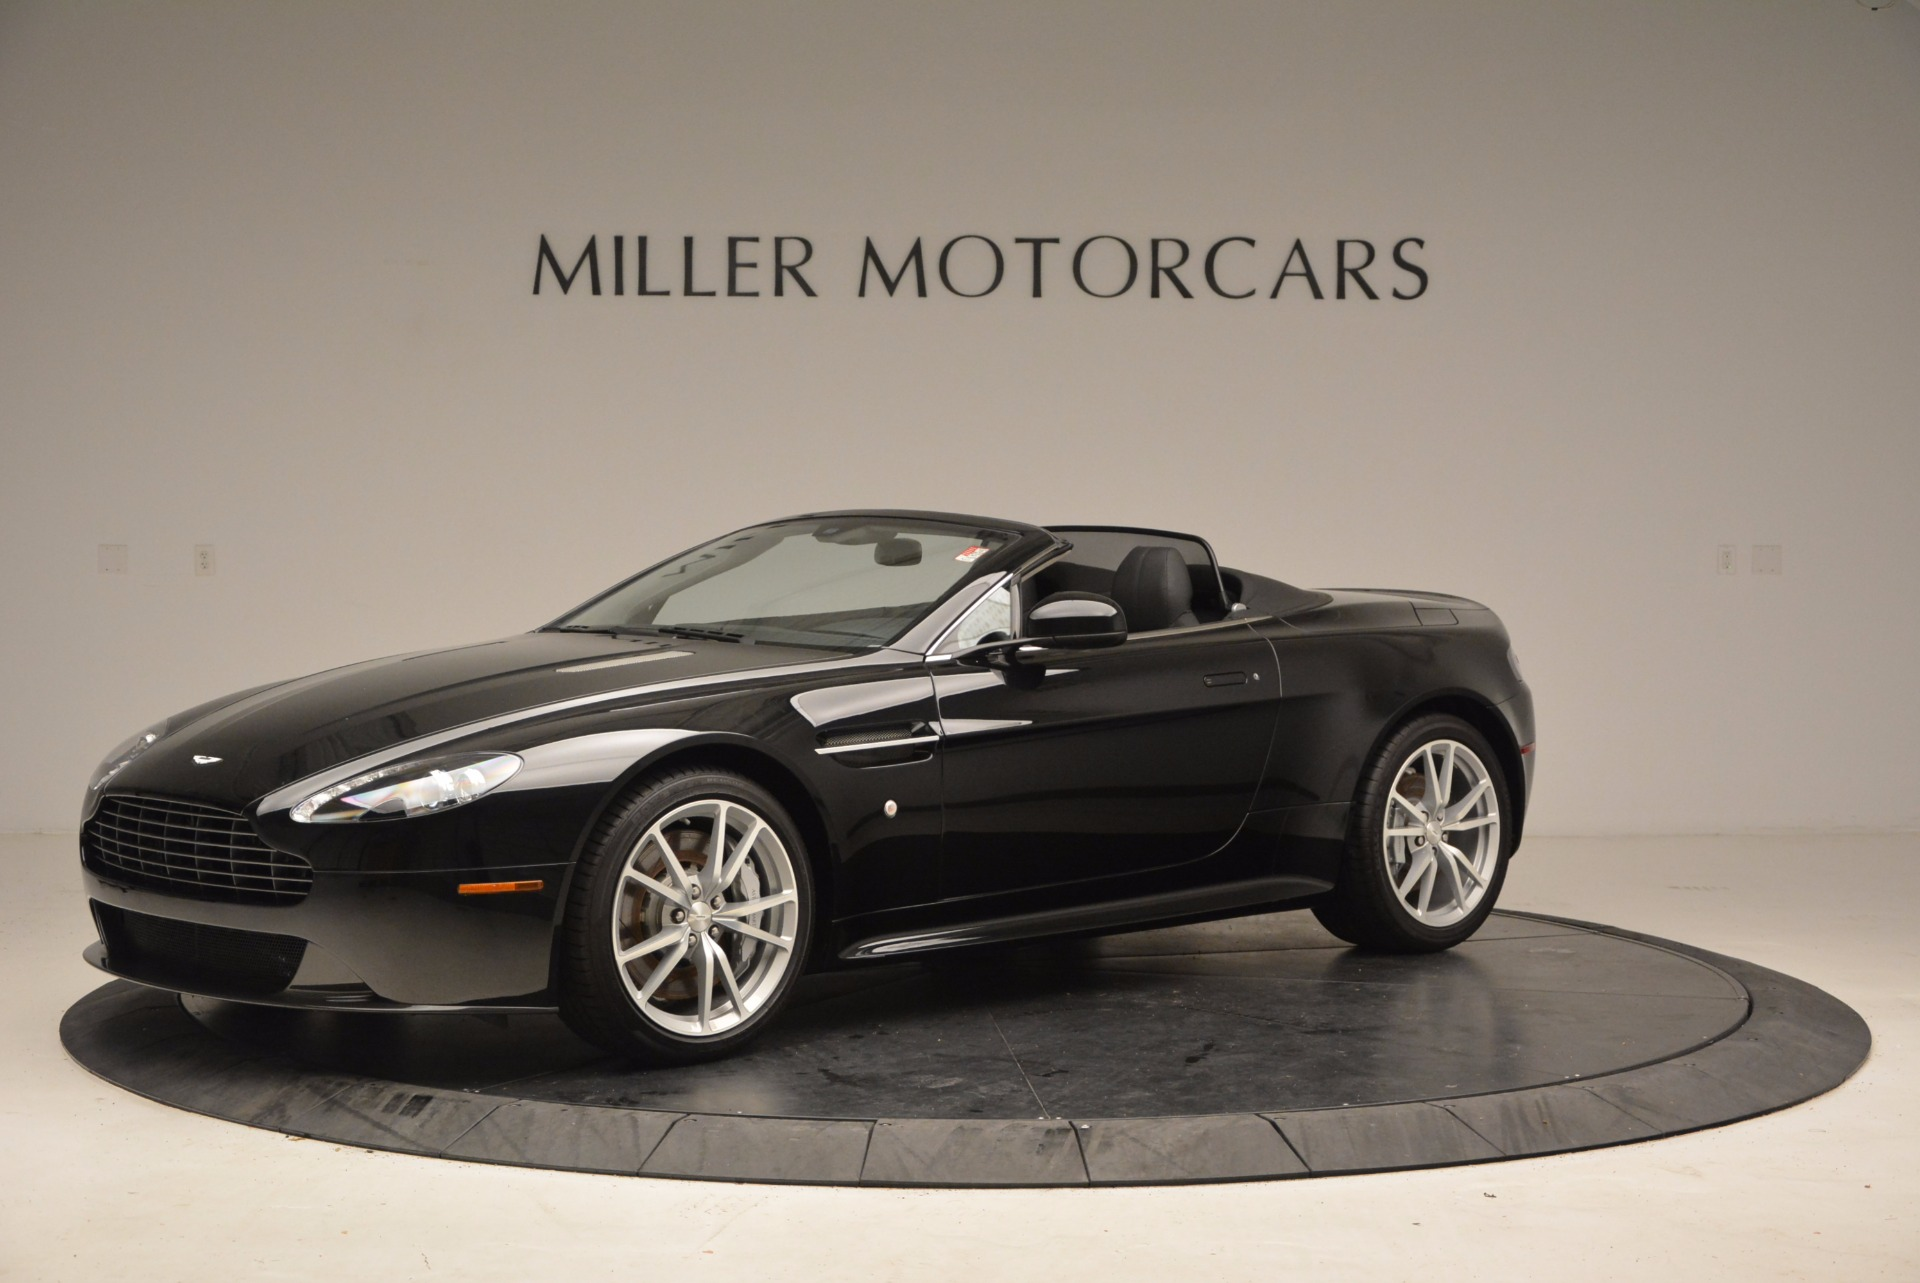 New 2016 Aston Martin V8 Vantage Roadster For Sale In Westport, CT 1546_p2